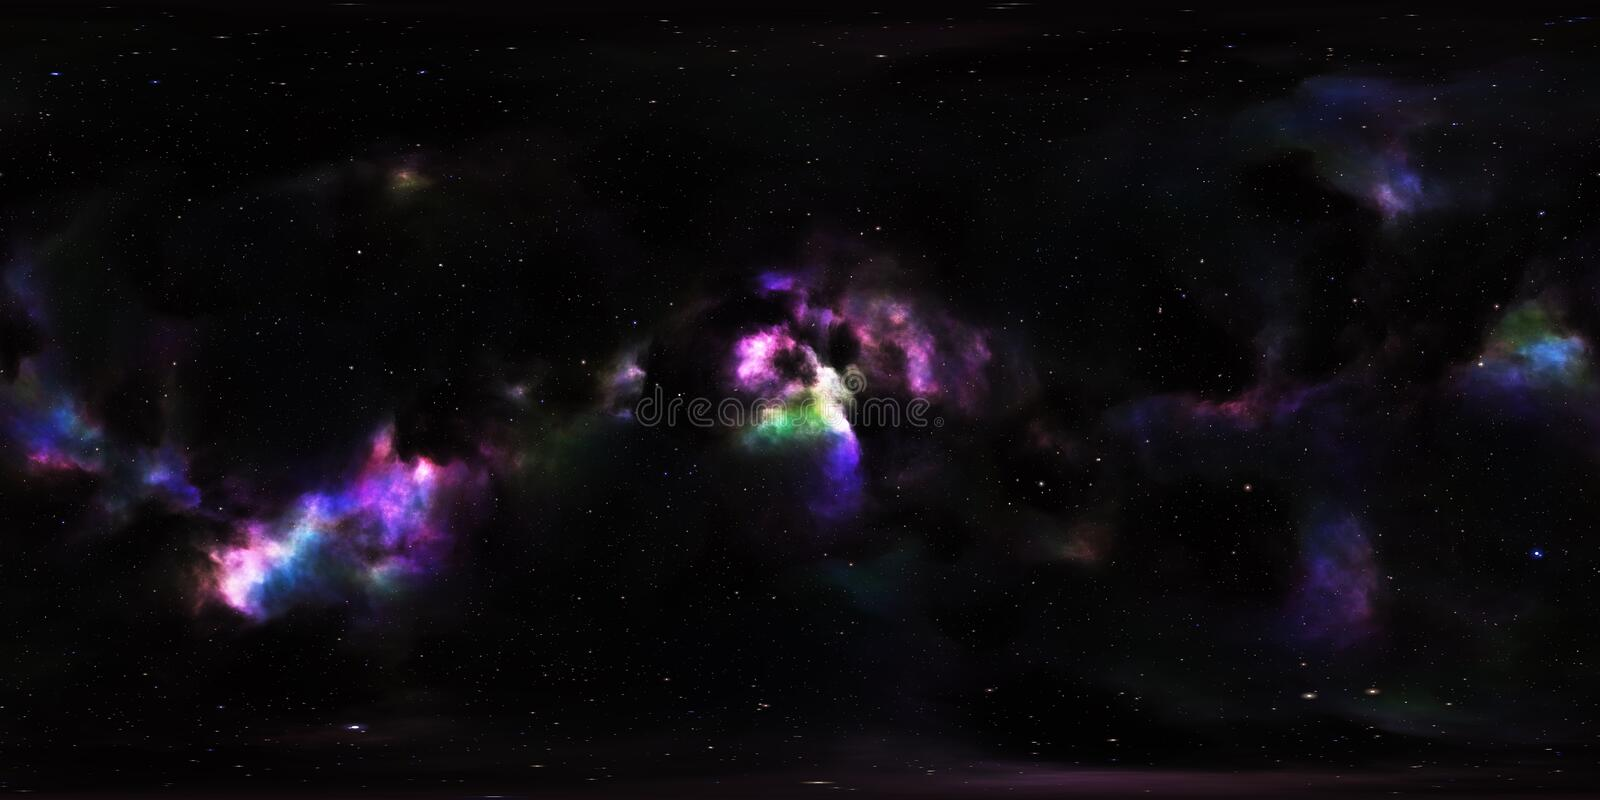 Nebula and Stars in Outer Space 360 Degree Environment Panorama stock illustration